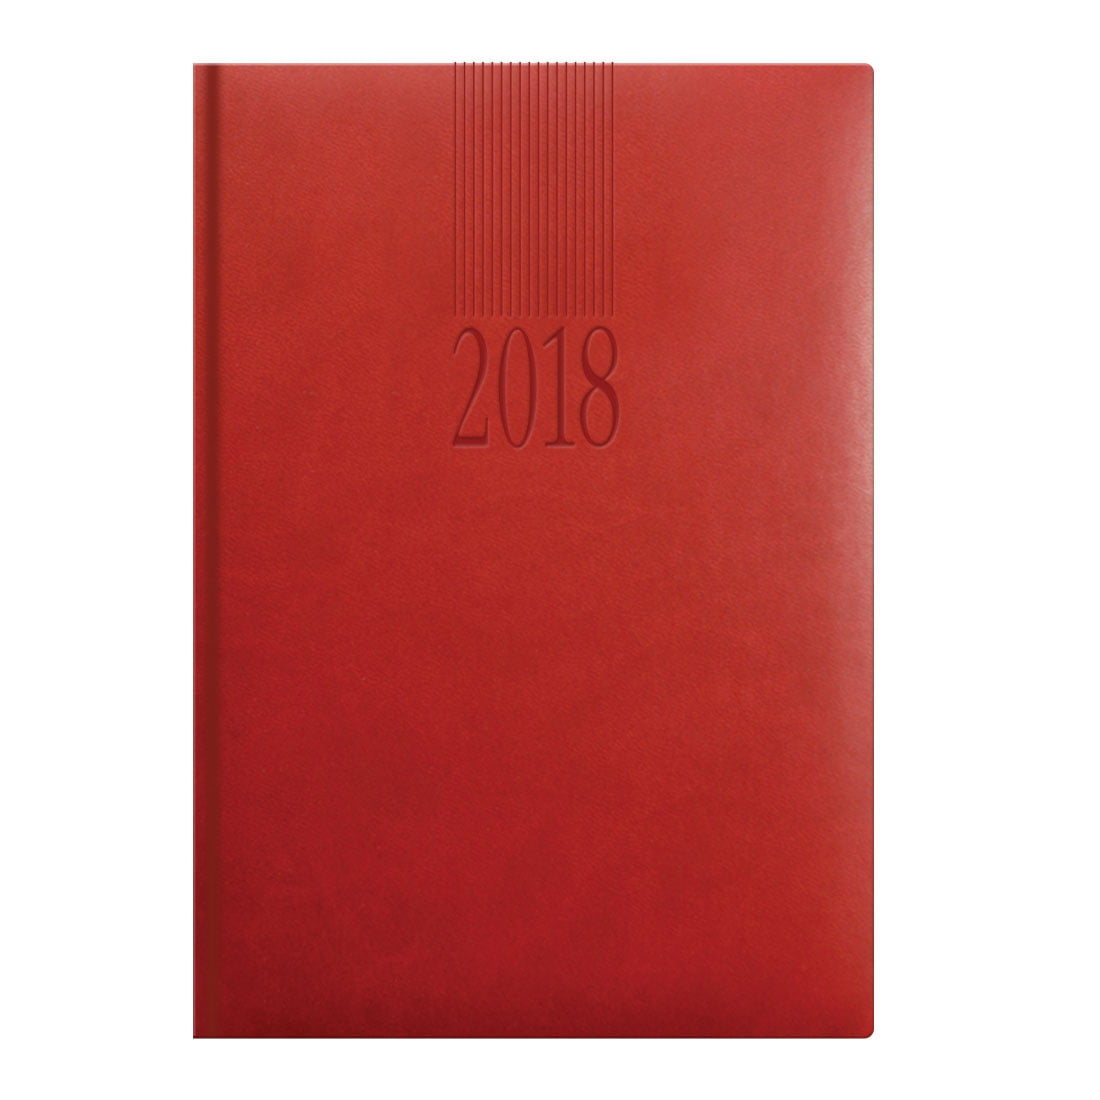 A5 desk diary in red, padded cover, monthly calendar grids in blue and grey.